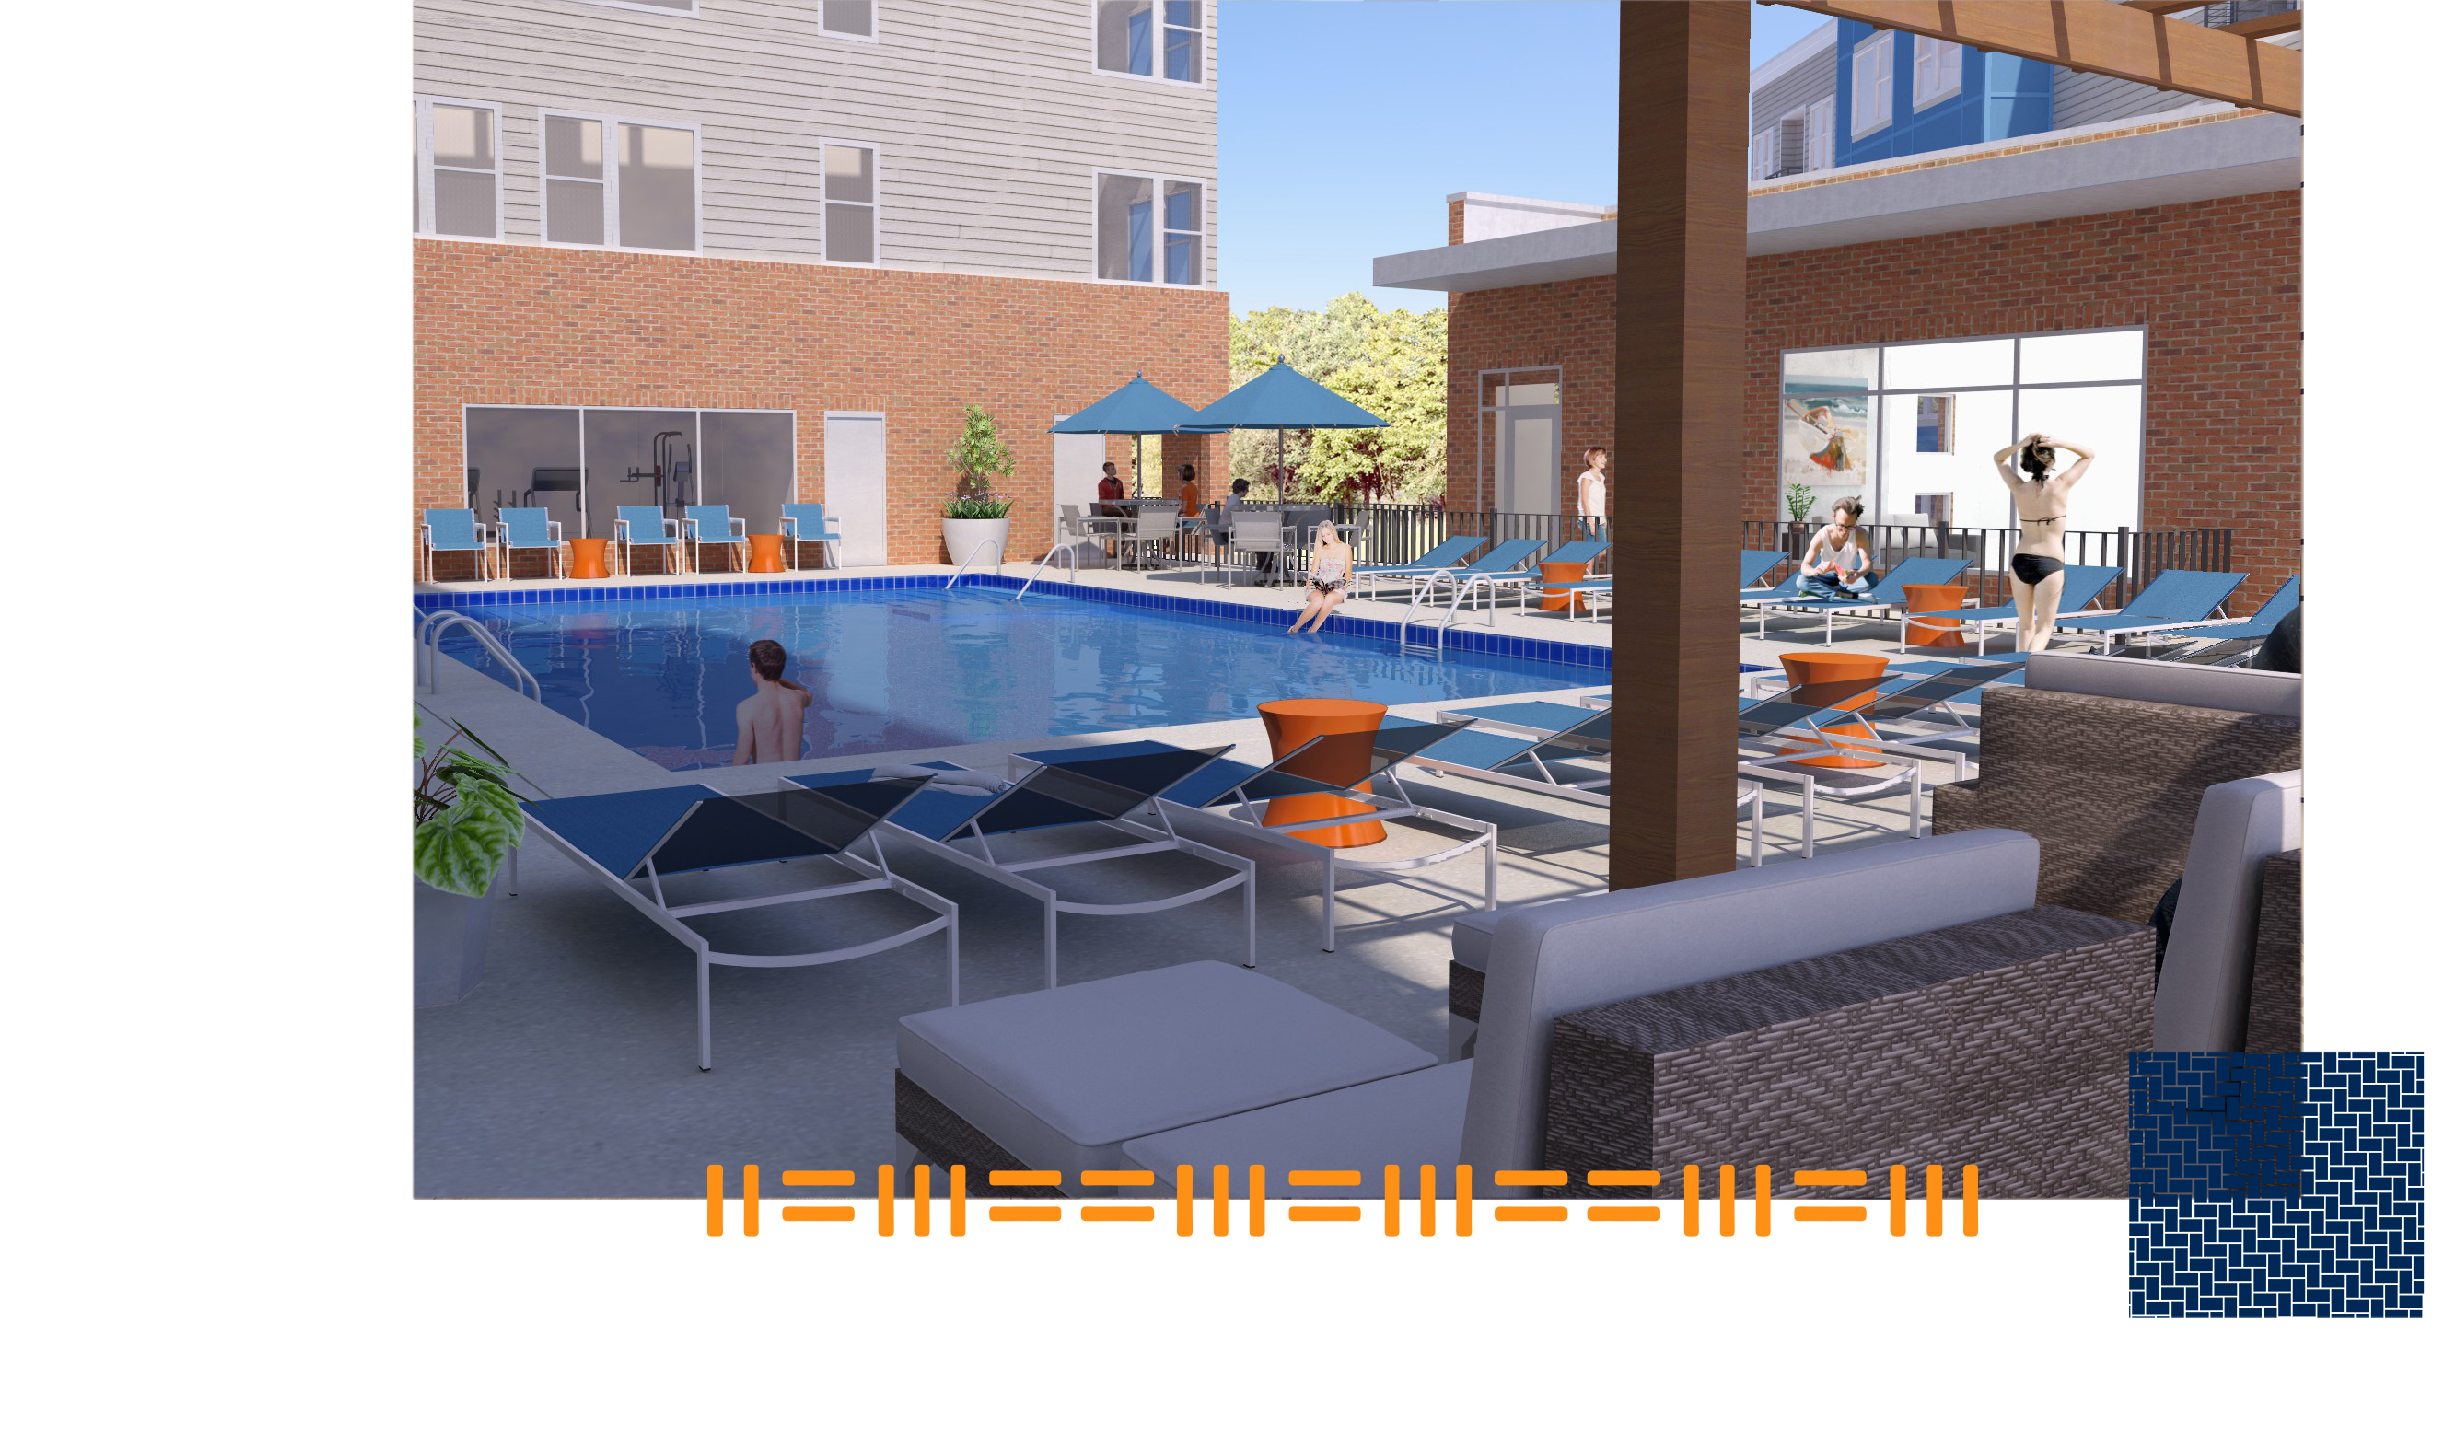 ONSITE POOL - Residents of The Longview will have access to an onsite pool to enjoy during the hotter months in Raleigh.